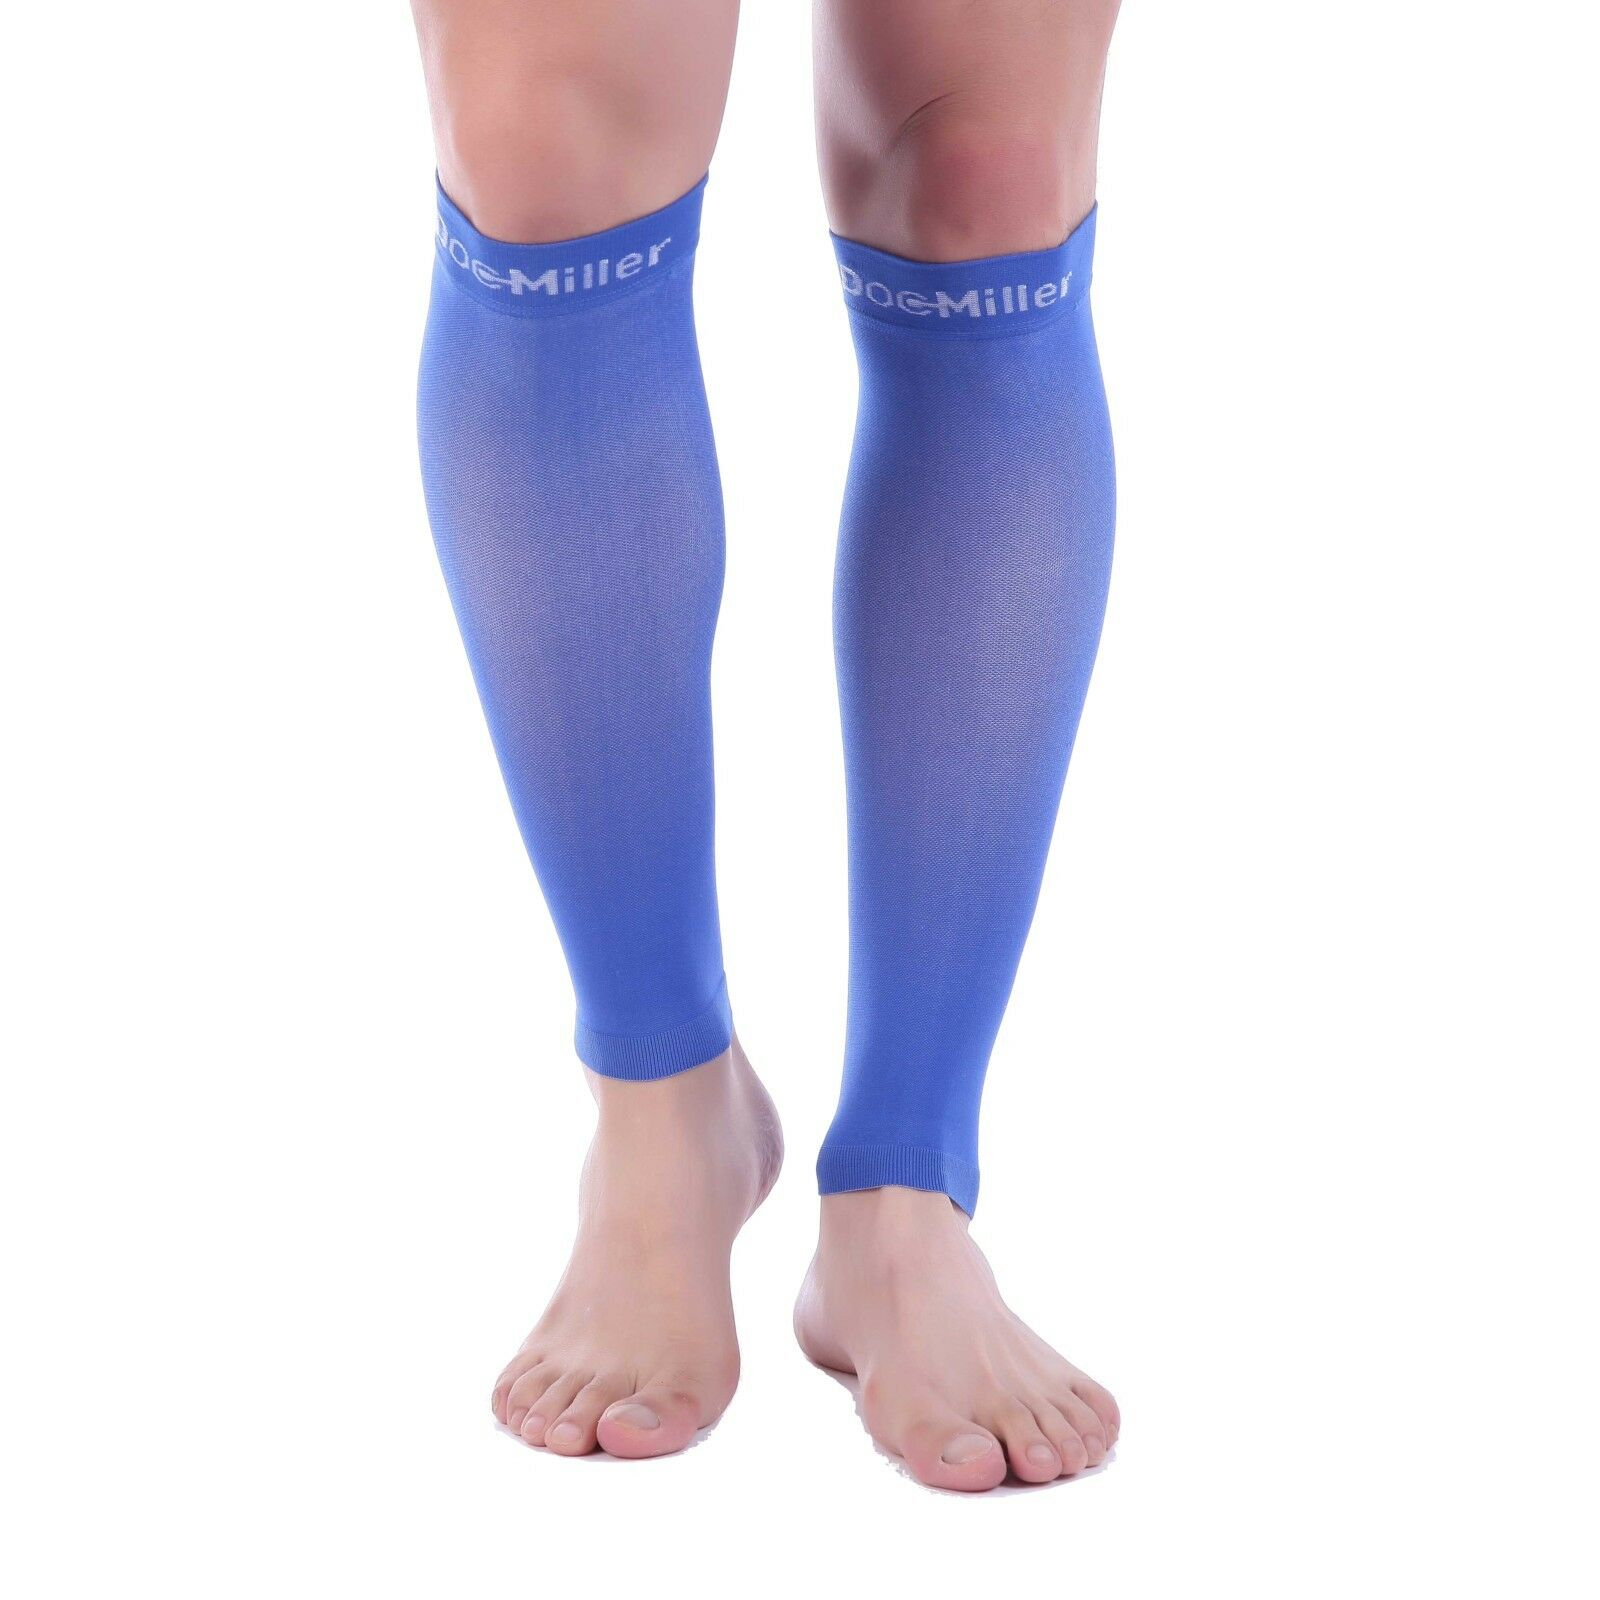 7b54225efcc51 Details about Doc Miller Calf Compression Sleeve 30-40 mmHg Varicose Veins  Leg Support BLUE